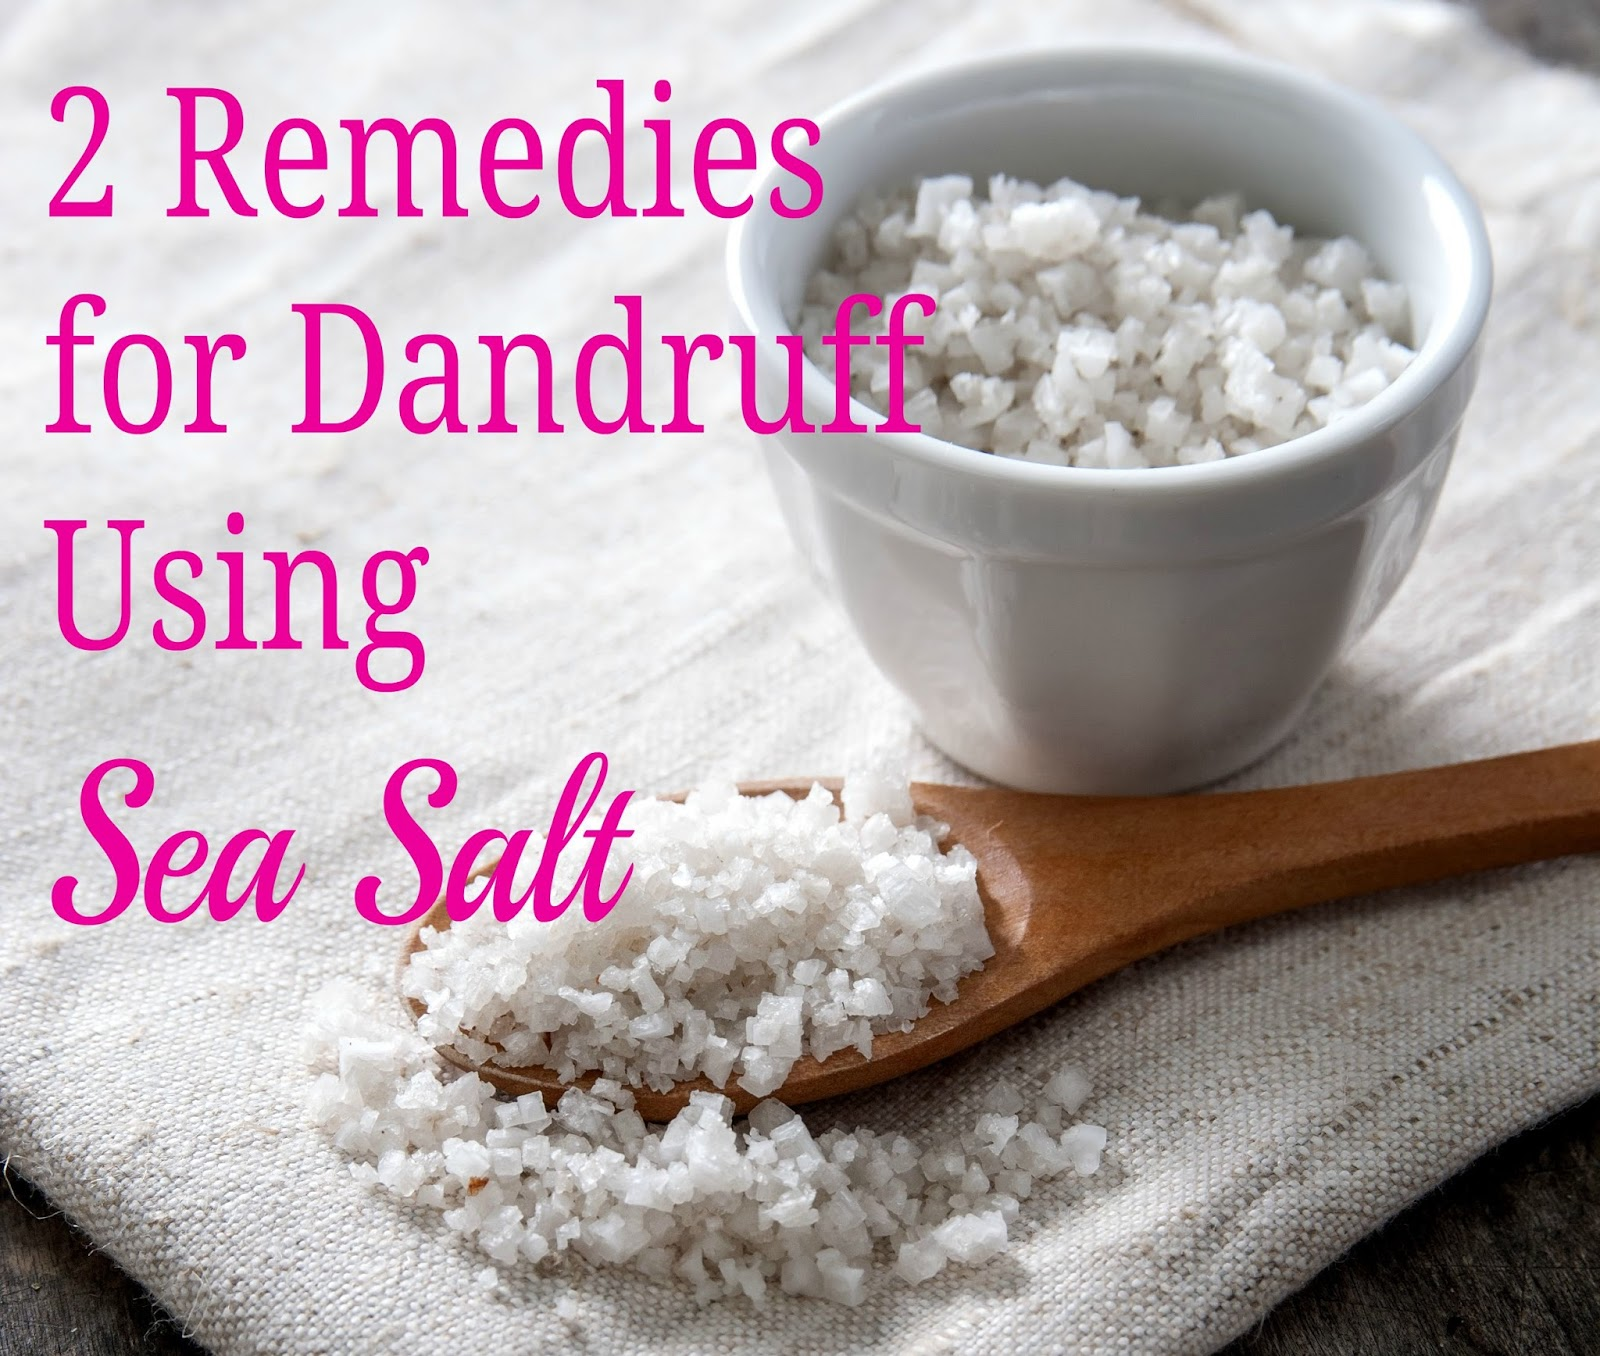 2 Remedies for Dandruff Using Sea Salt